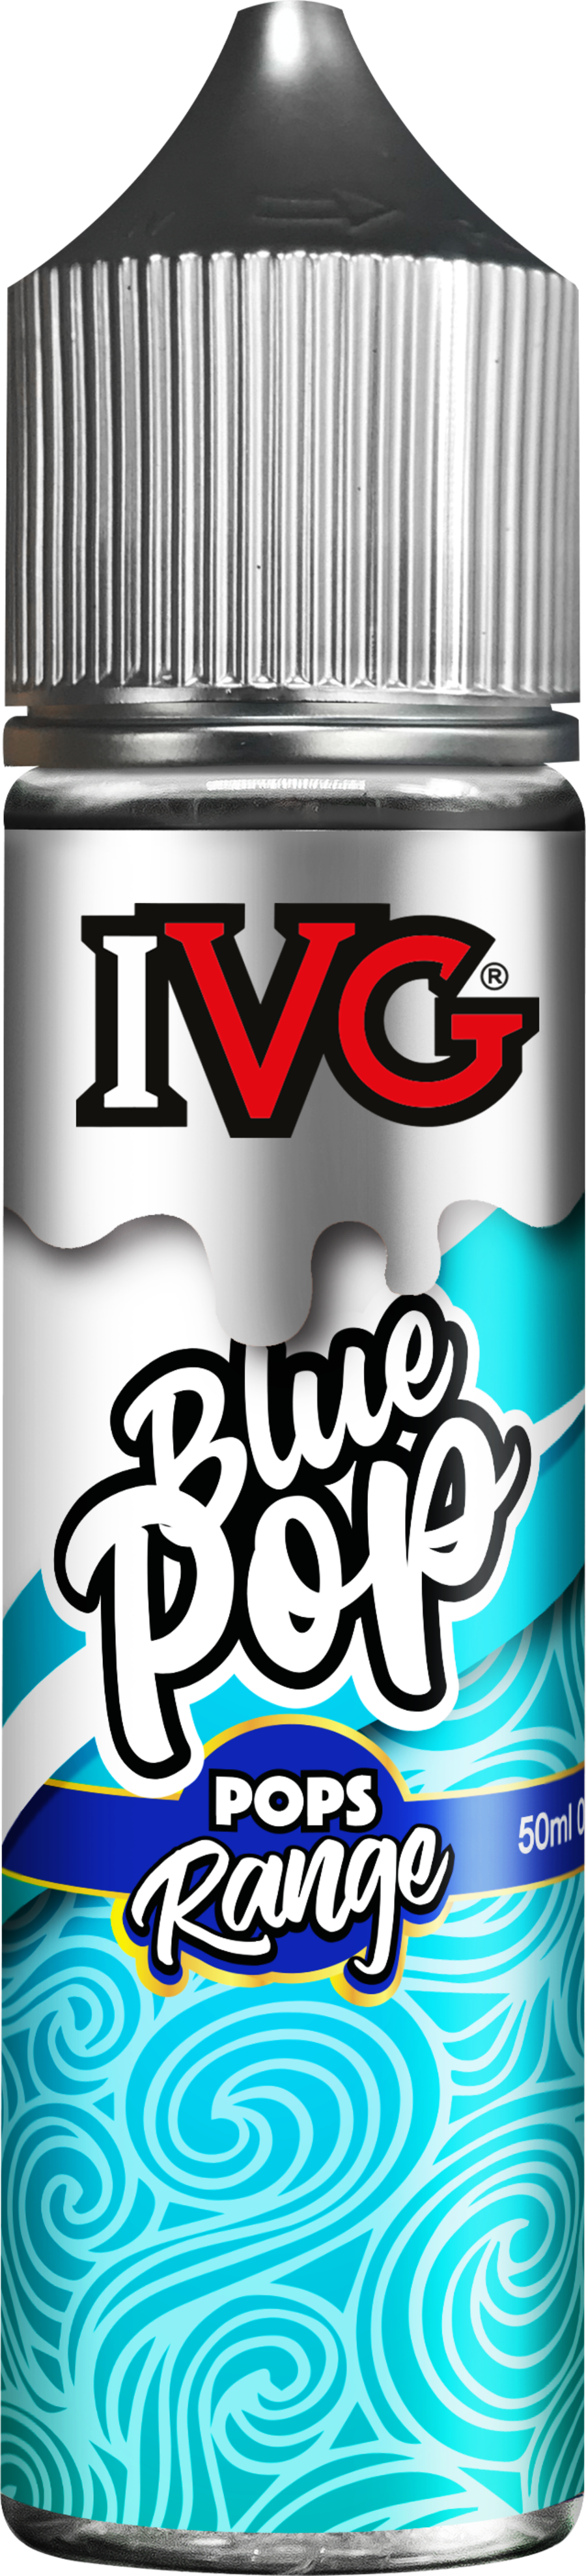 Blue pop by I VG Pops 50ml